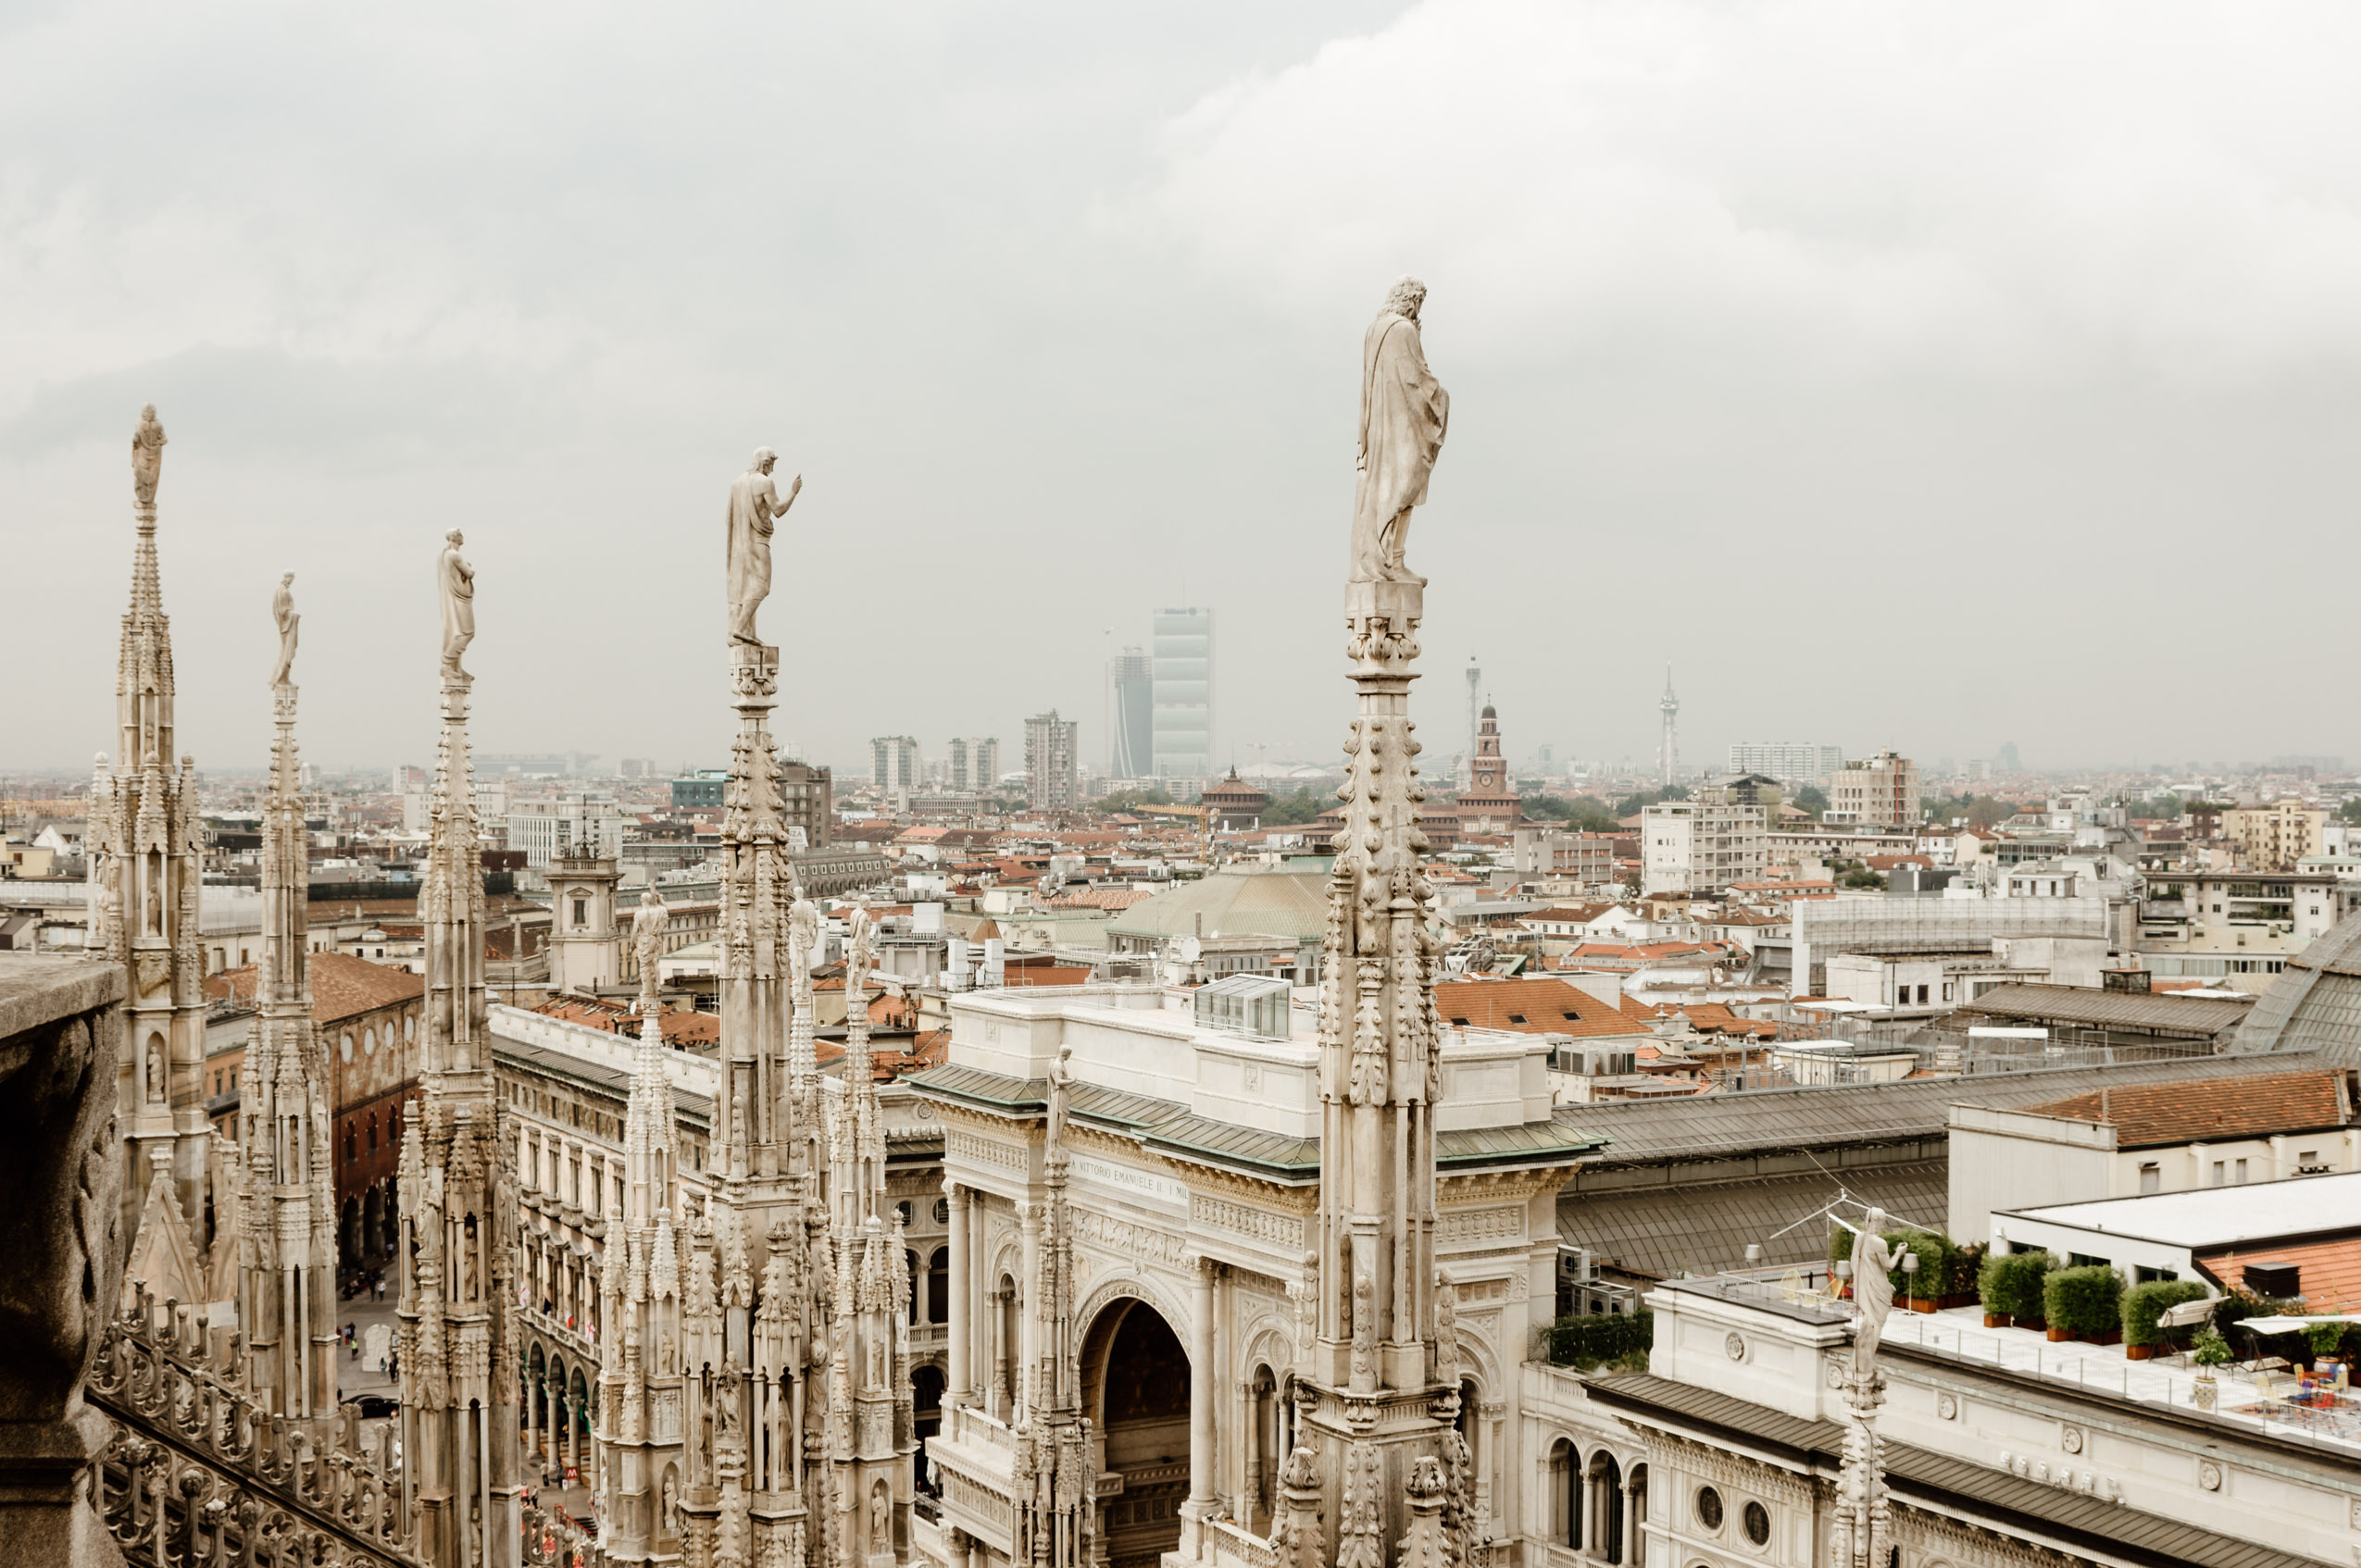 Lombardy, part 2- What to see in Milan